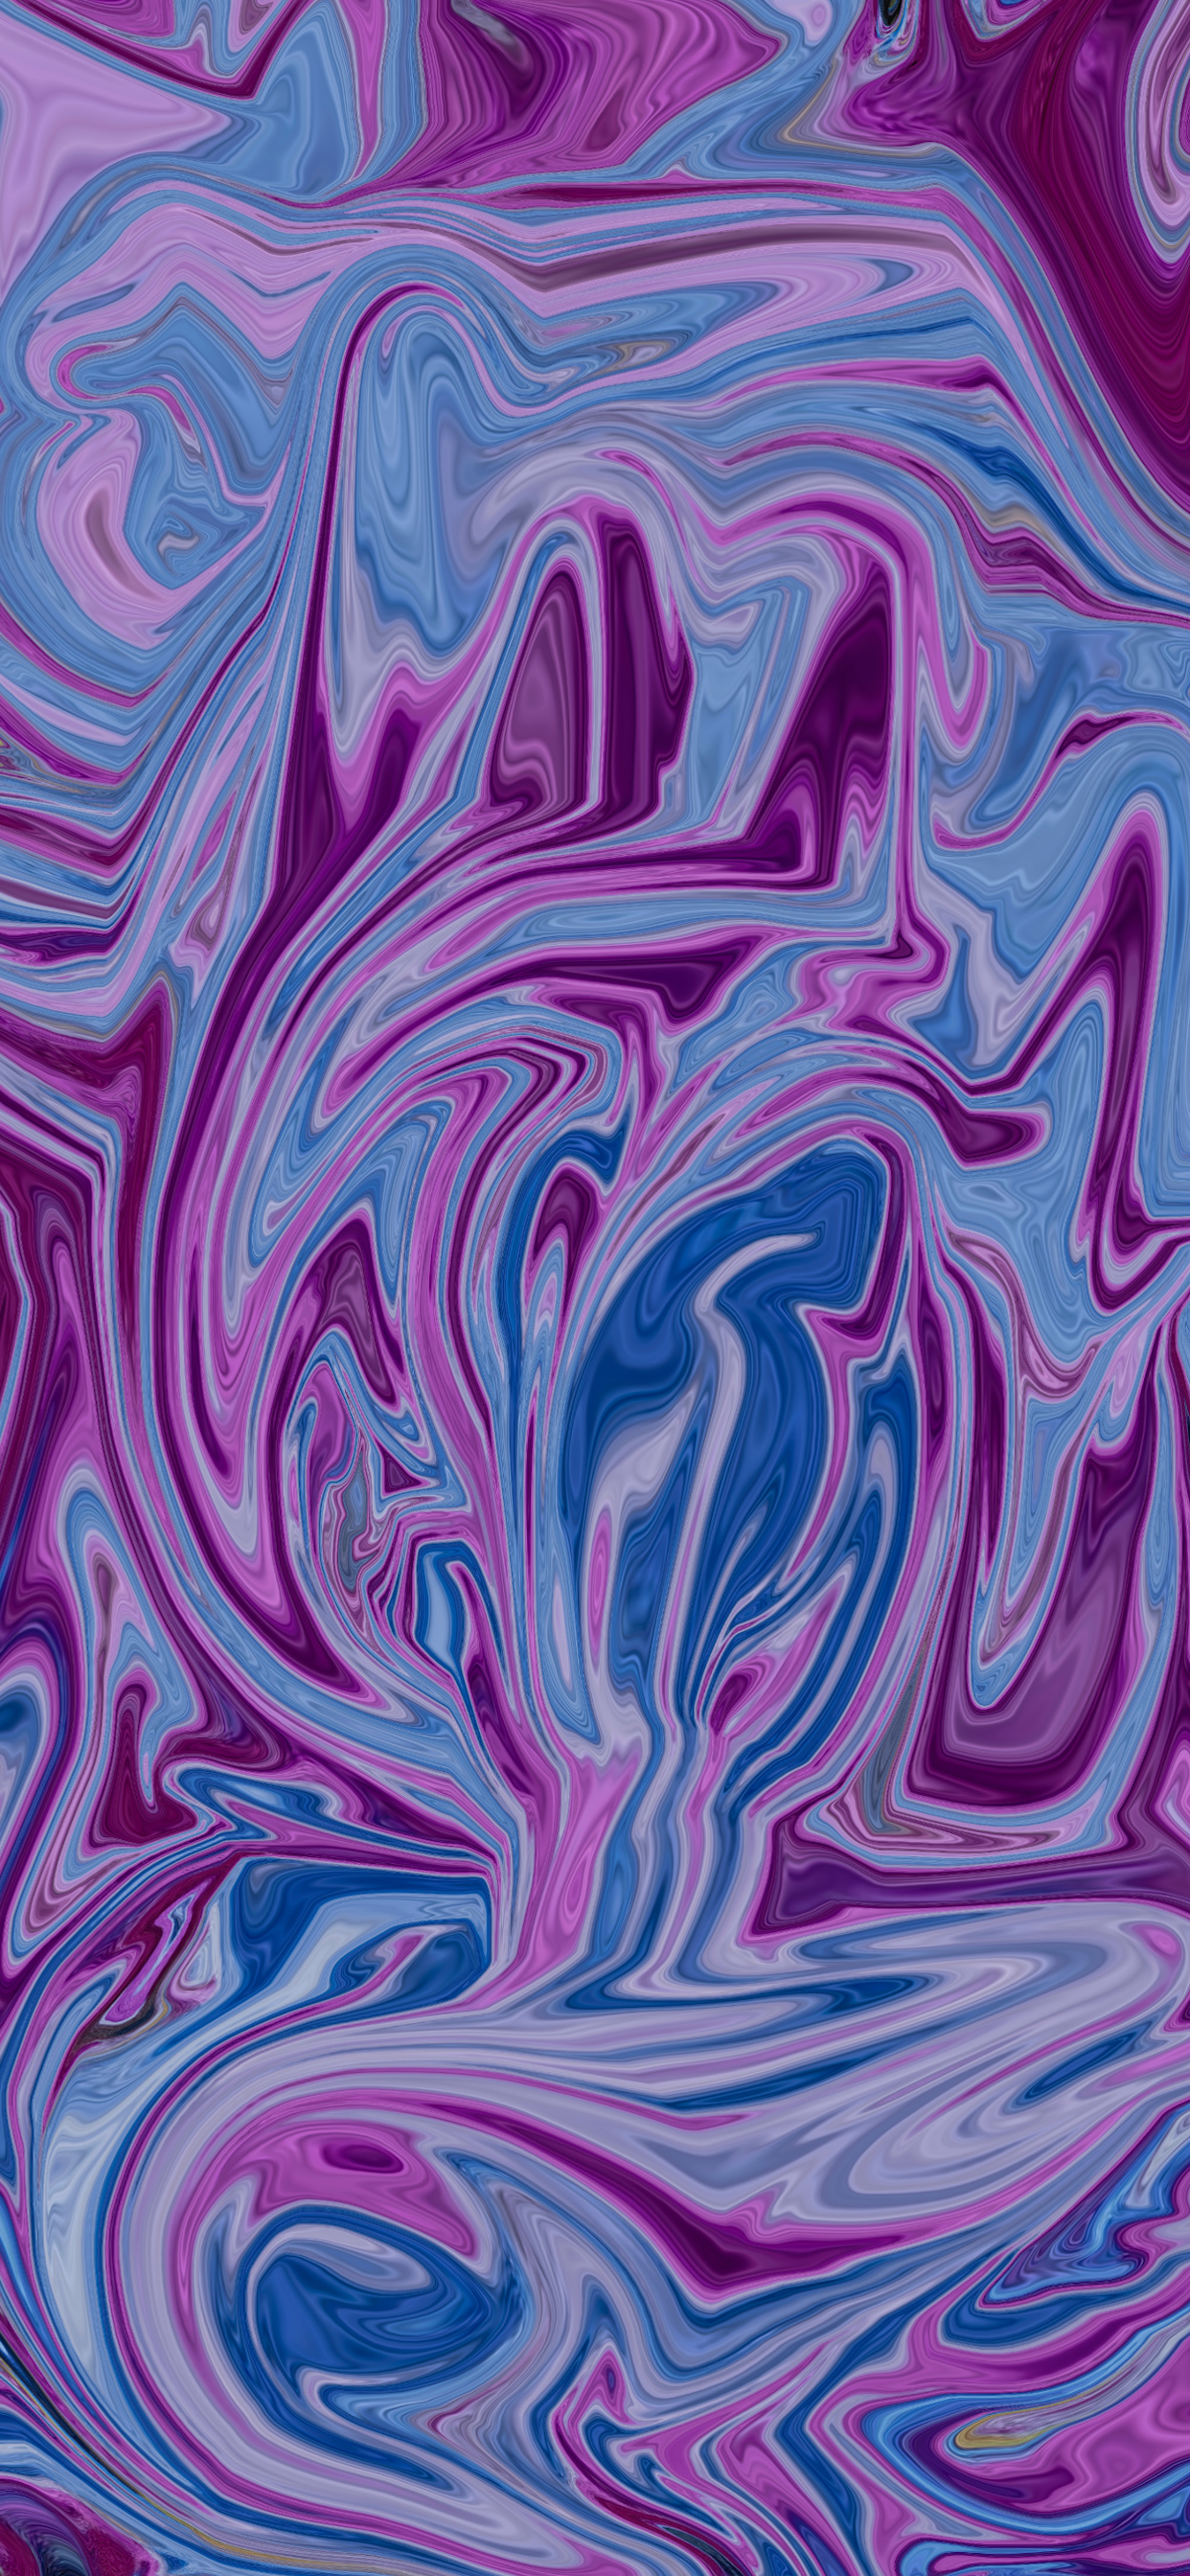 iPhone wallpapers abstract painting purple blue Fonds d'écran iPhone du 11/11/2019